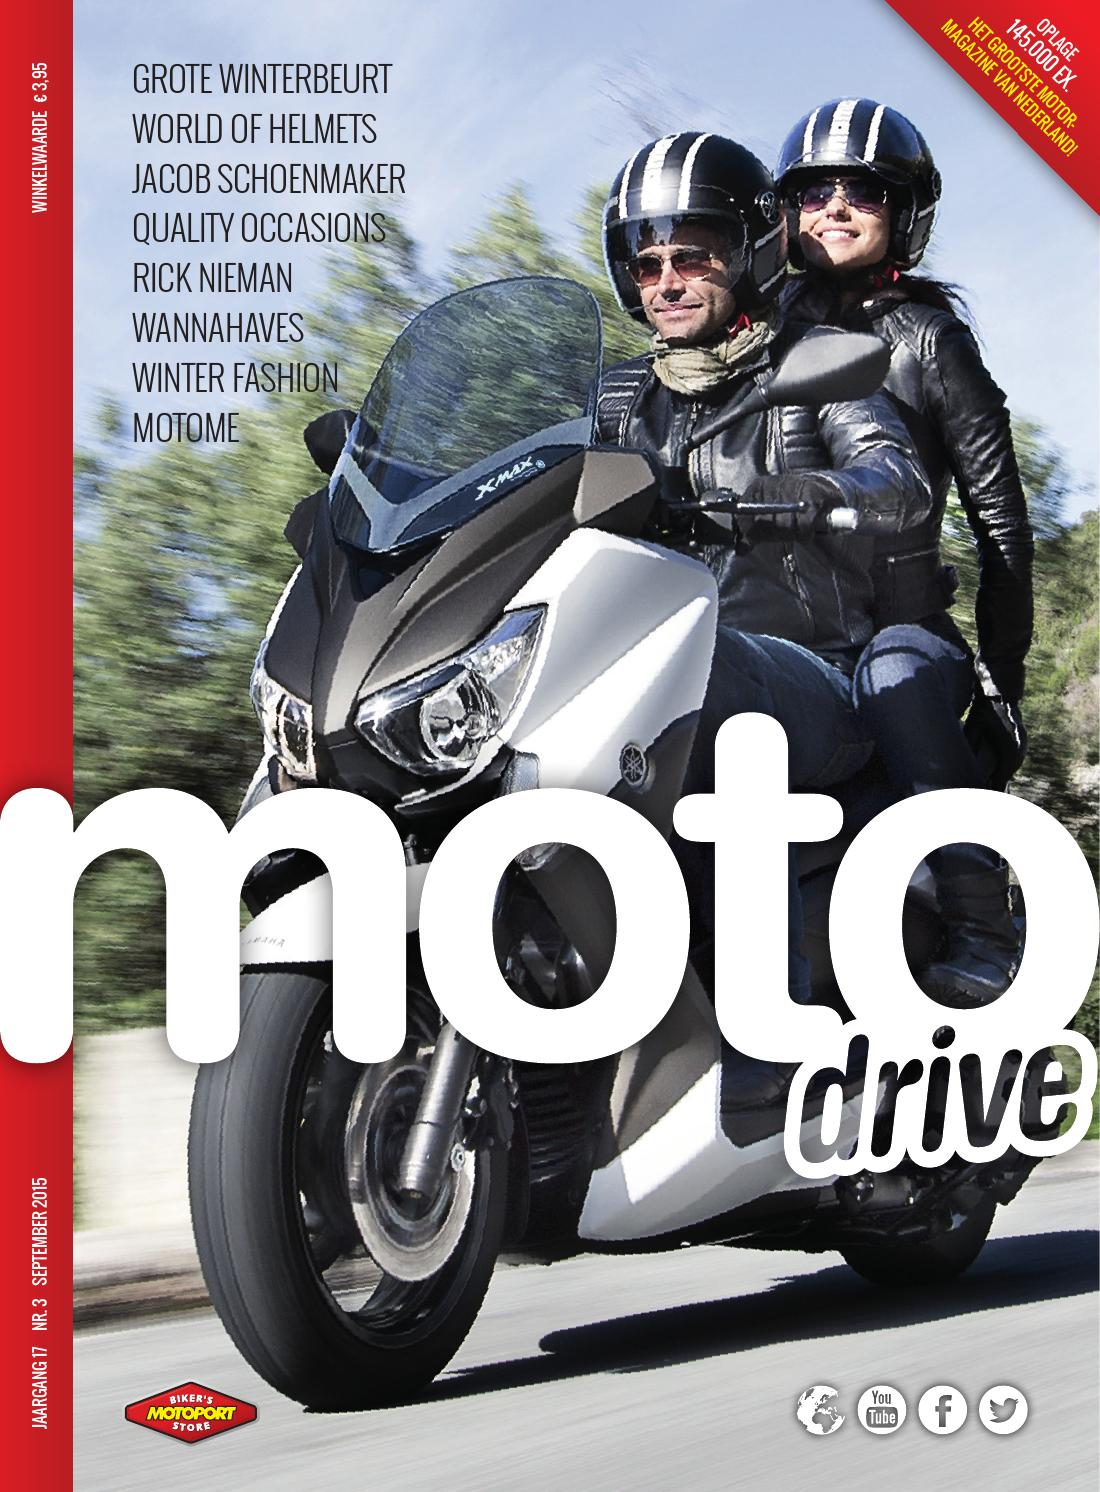 Br Hesje Reflecterend Met Led Verlichting Geel Motodrive 03 2015 By Xtra Digital Agency Issuu